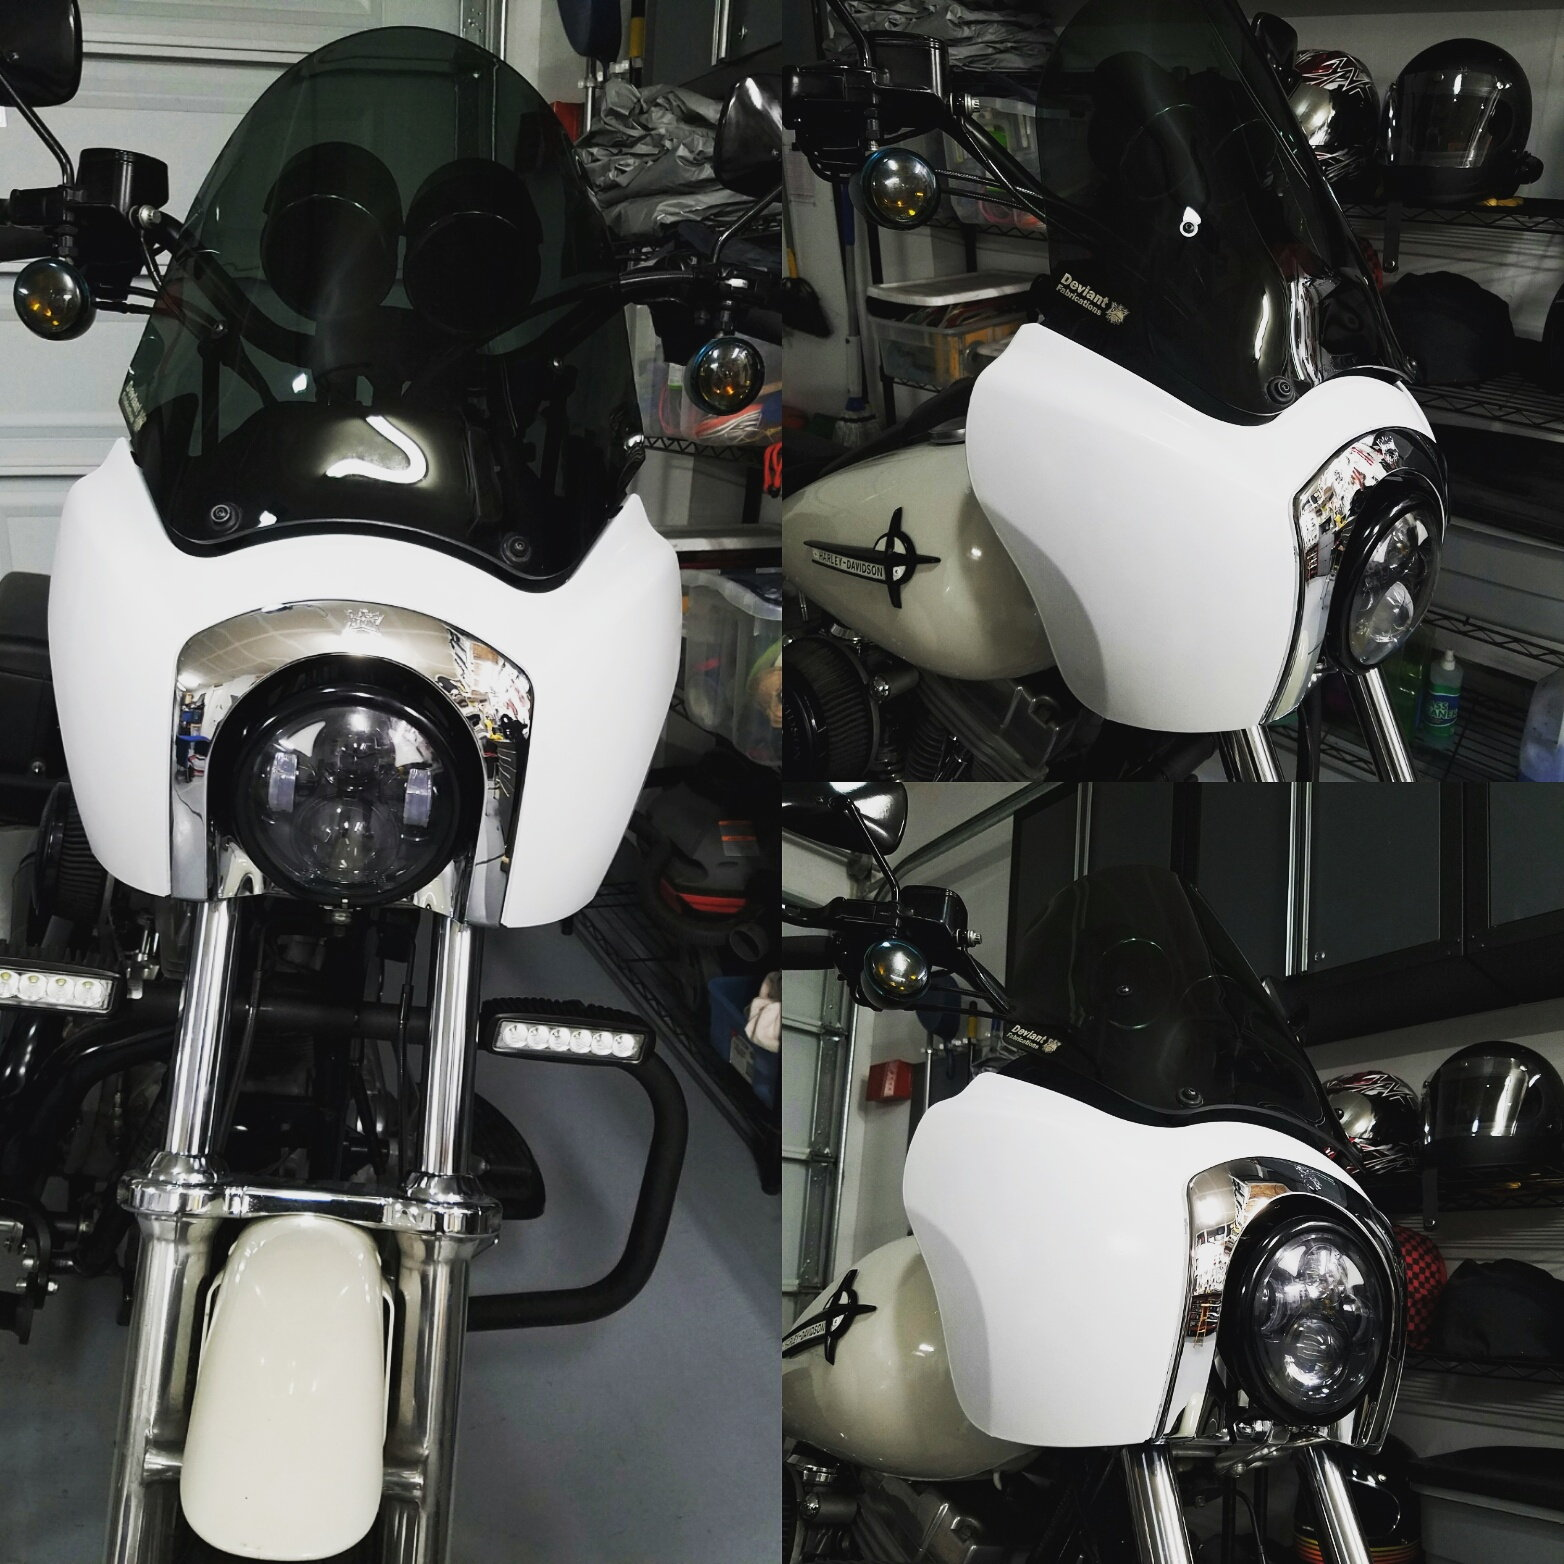 Got the install finished on Deviant Fabrication's FXDXT fairing. Used some  white plasti dip until I settle on a paint job.